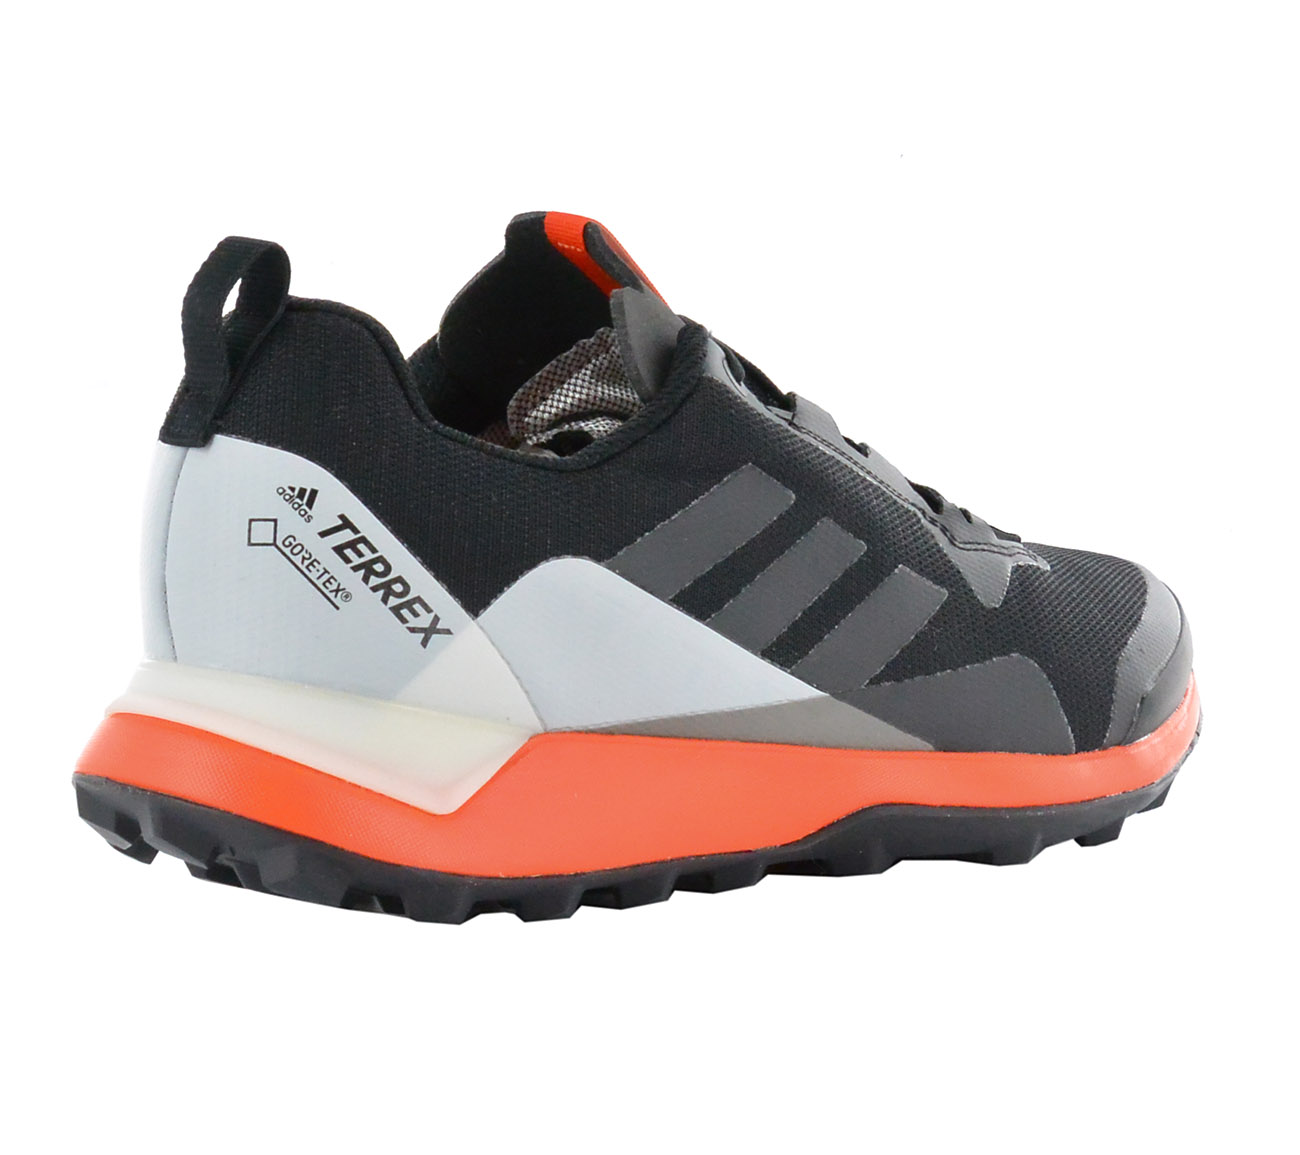 the best attitude 4b2c2 25013 Adidas Terrex Cmtk GTX Gore-Tex Shoes Black Men s Hiking Shoes Trail ...